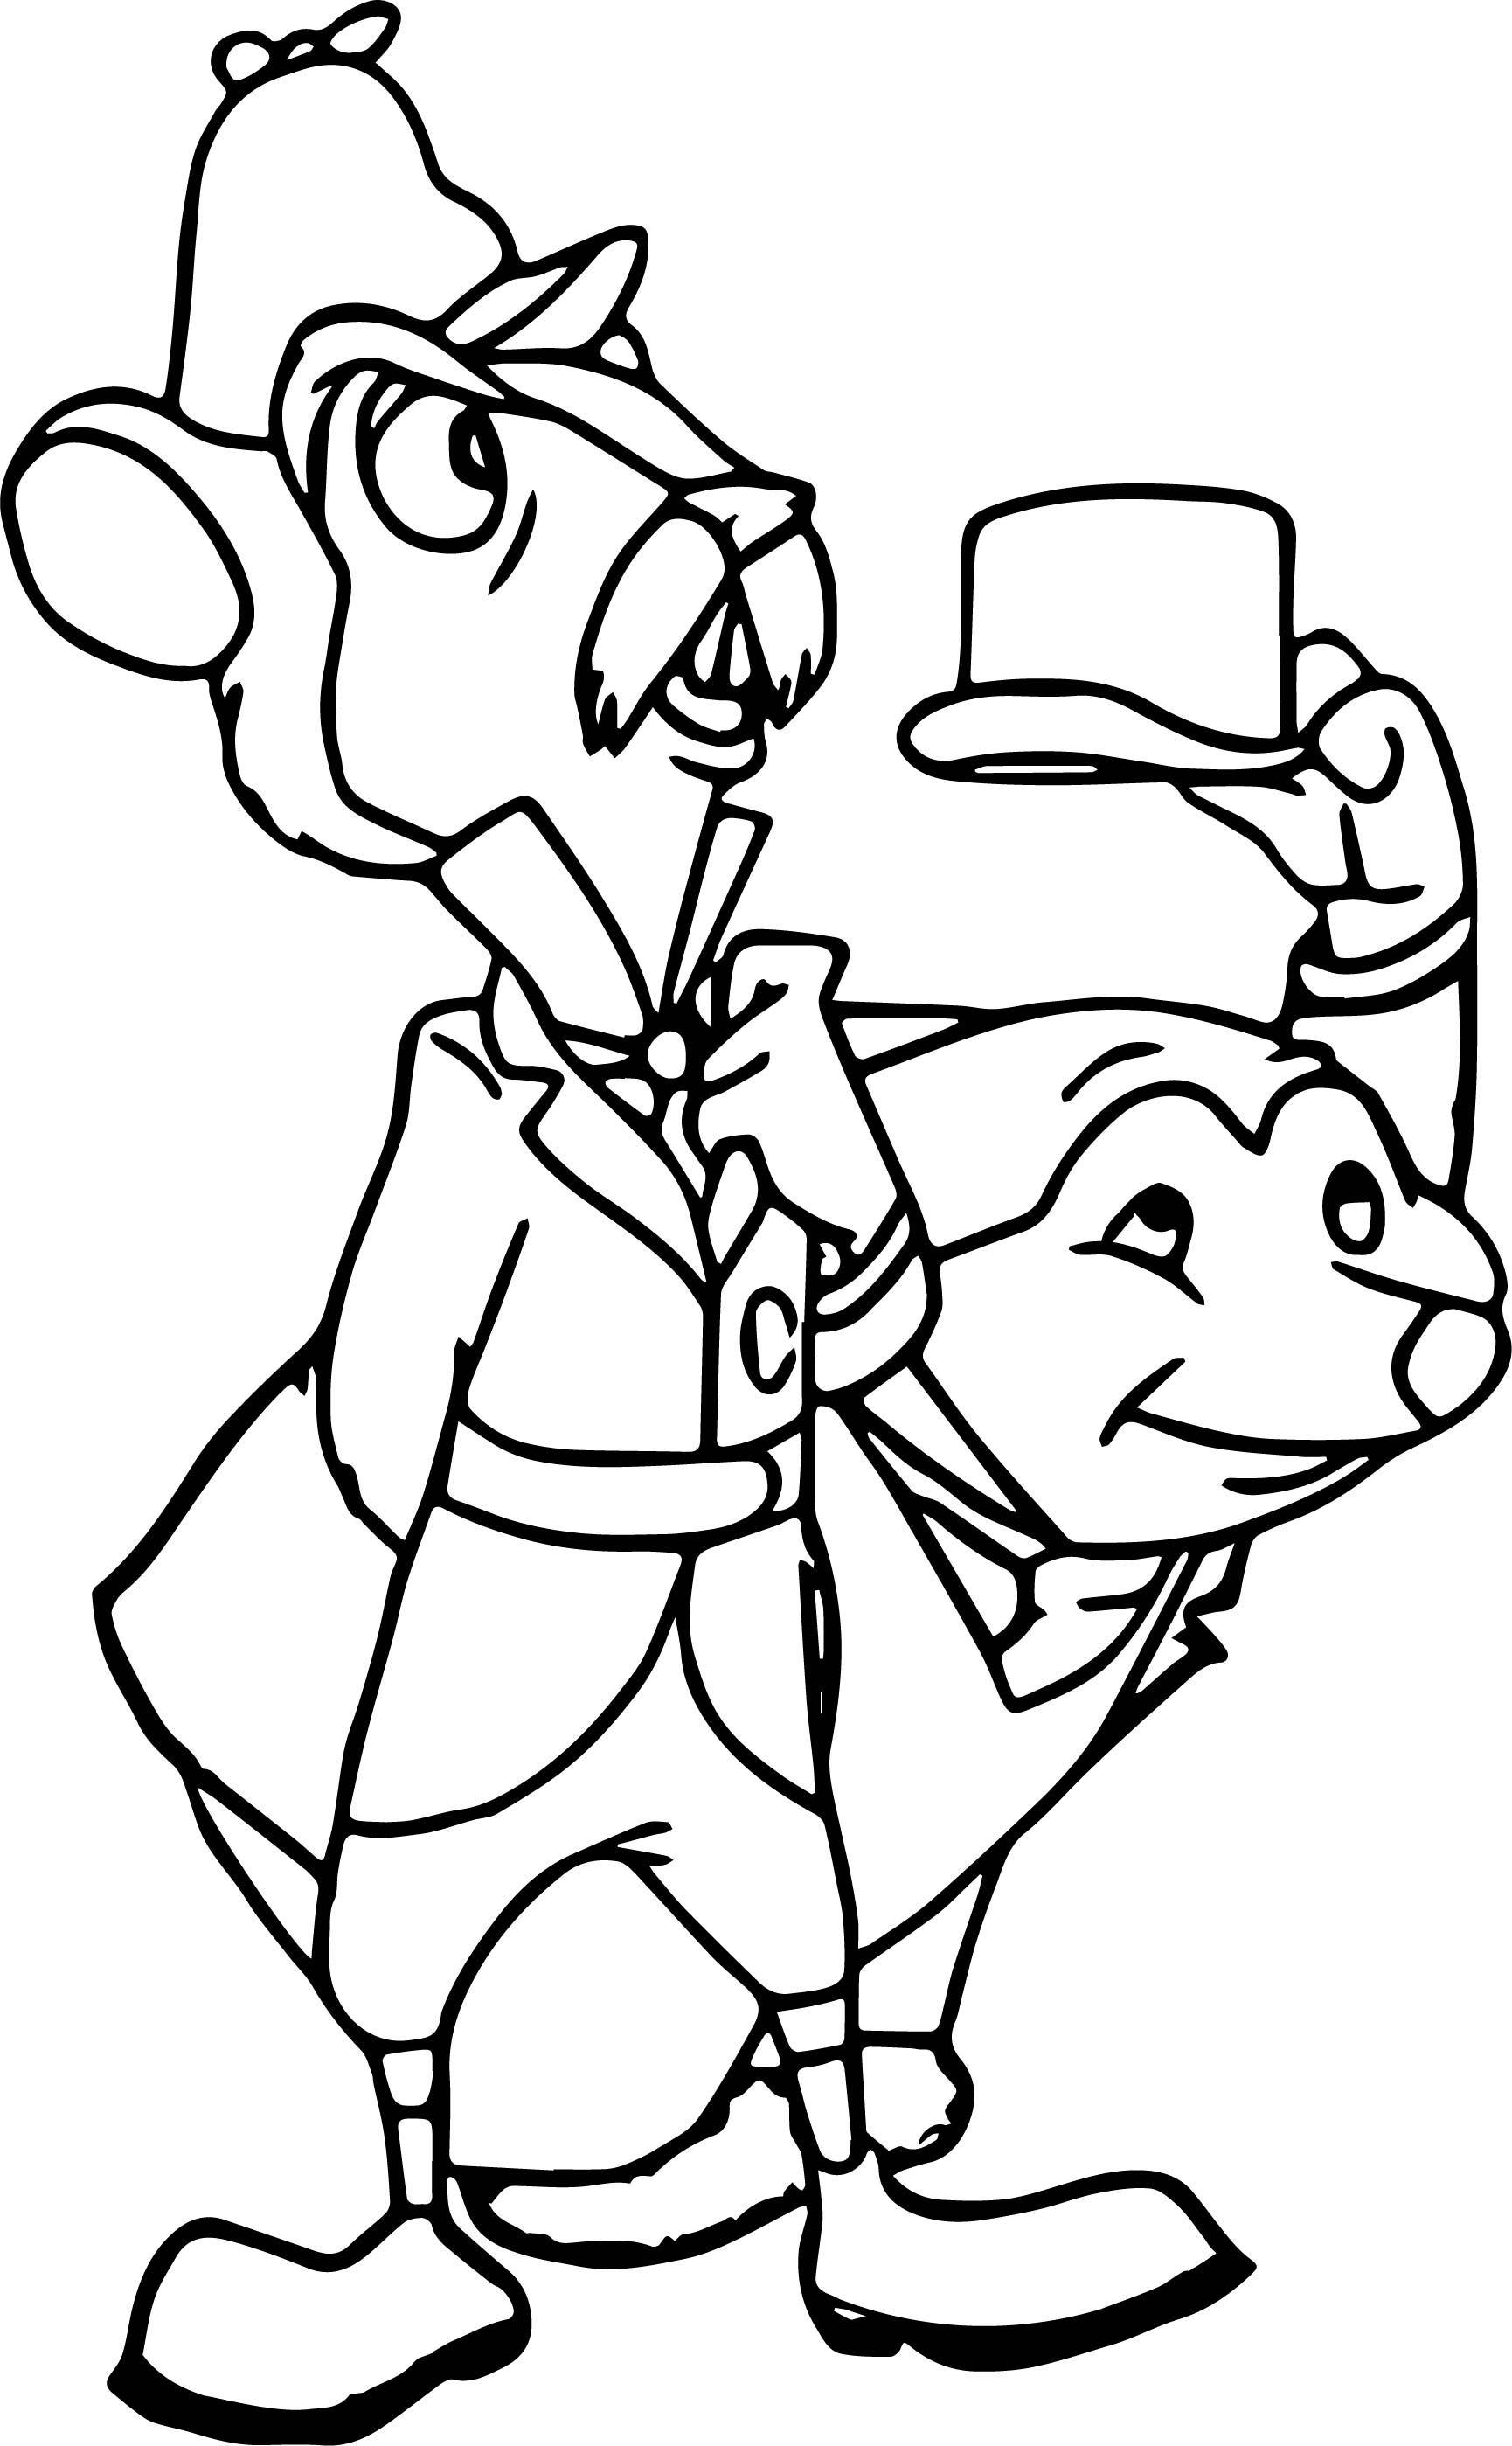 disney the adventures rat mole coloring page wecoloringpage